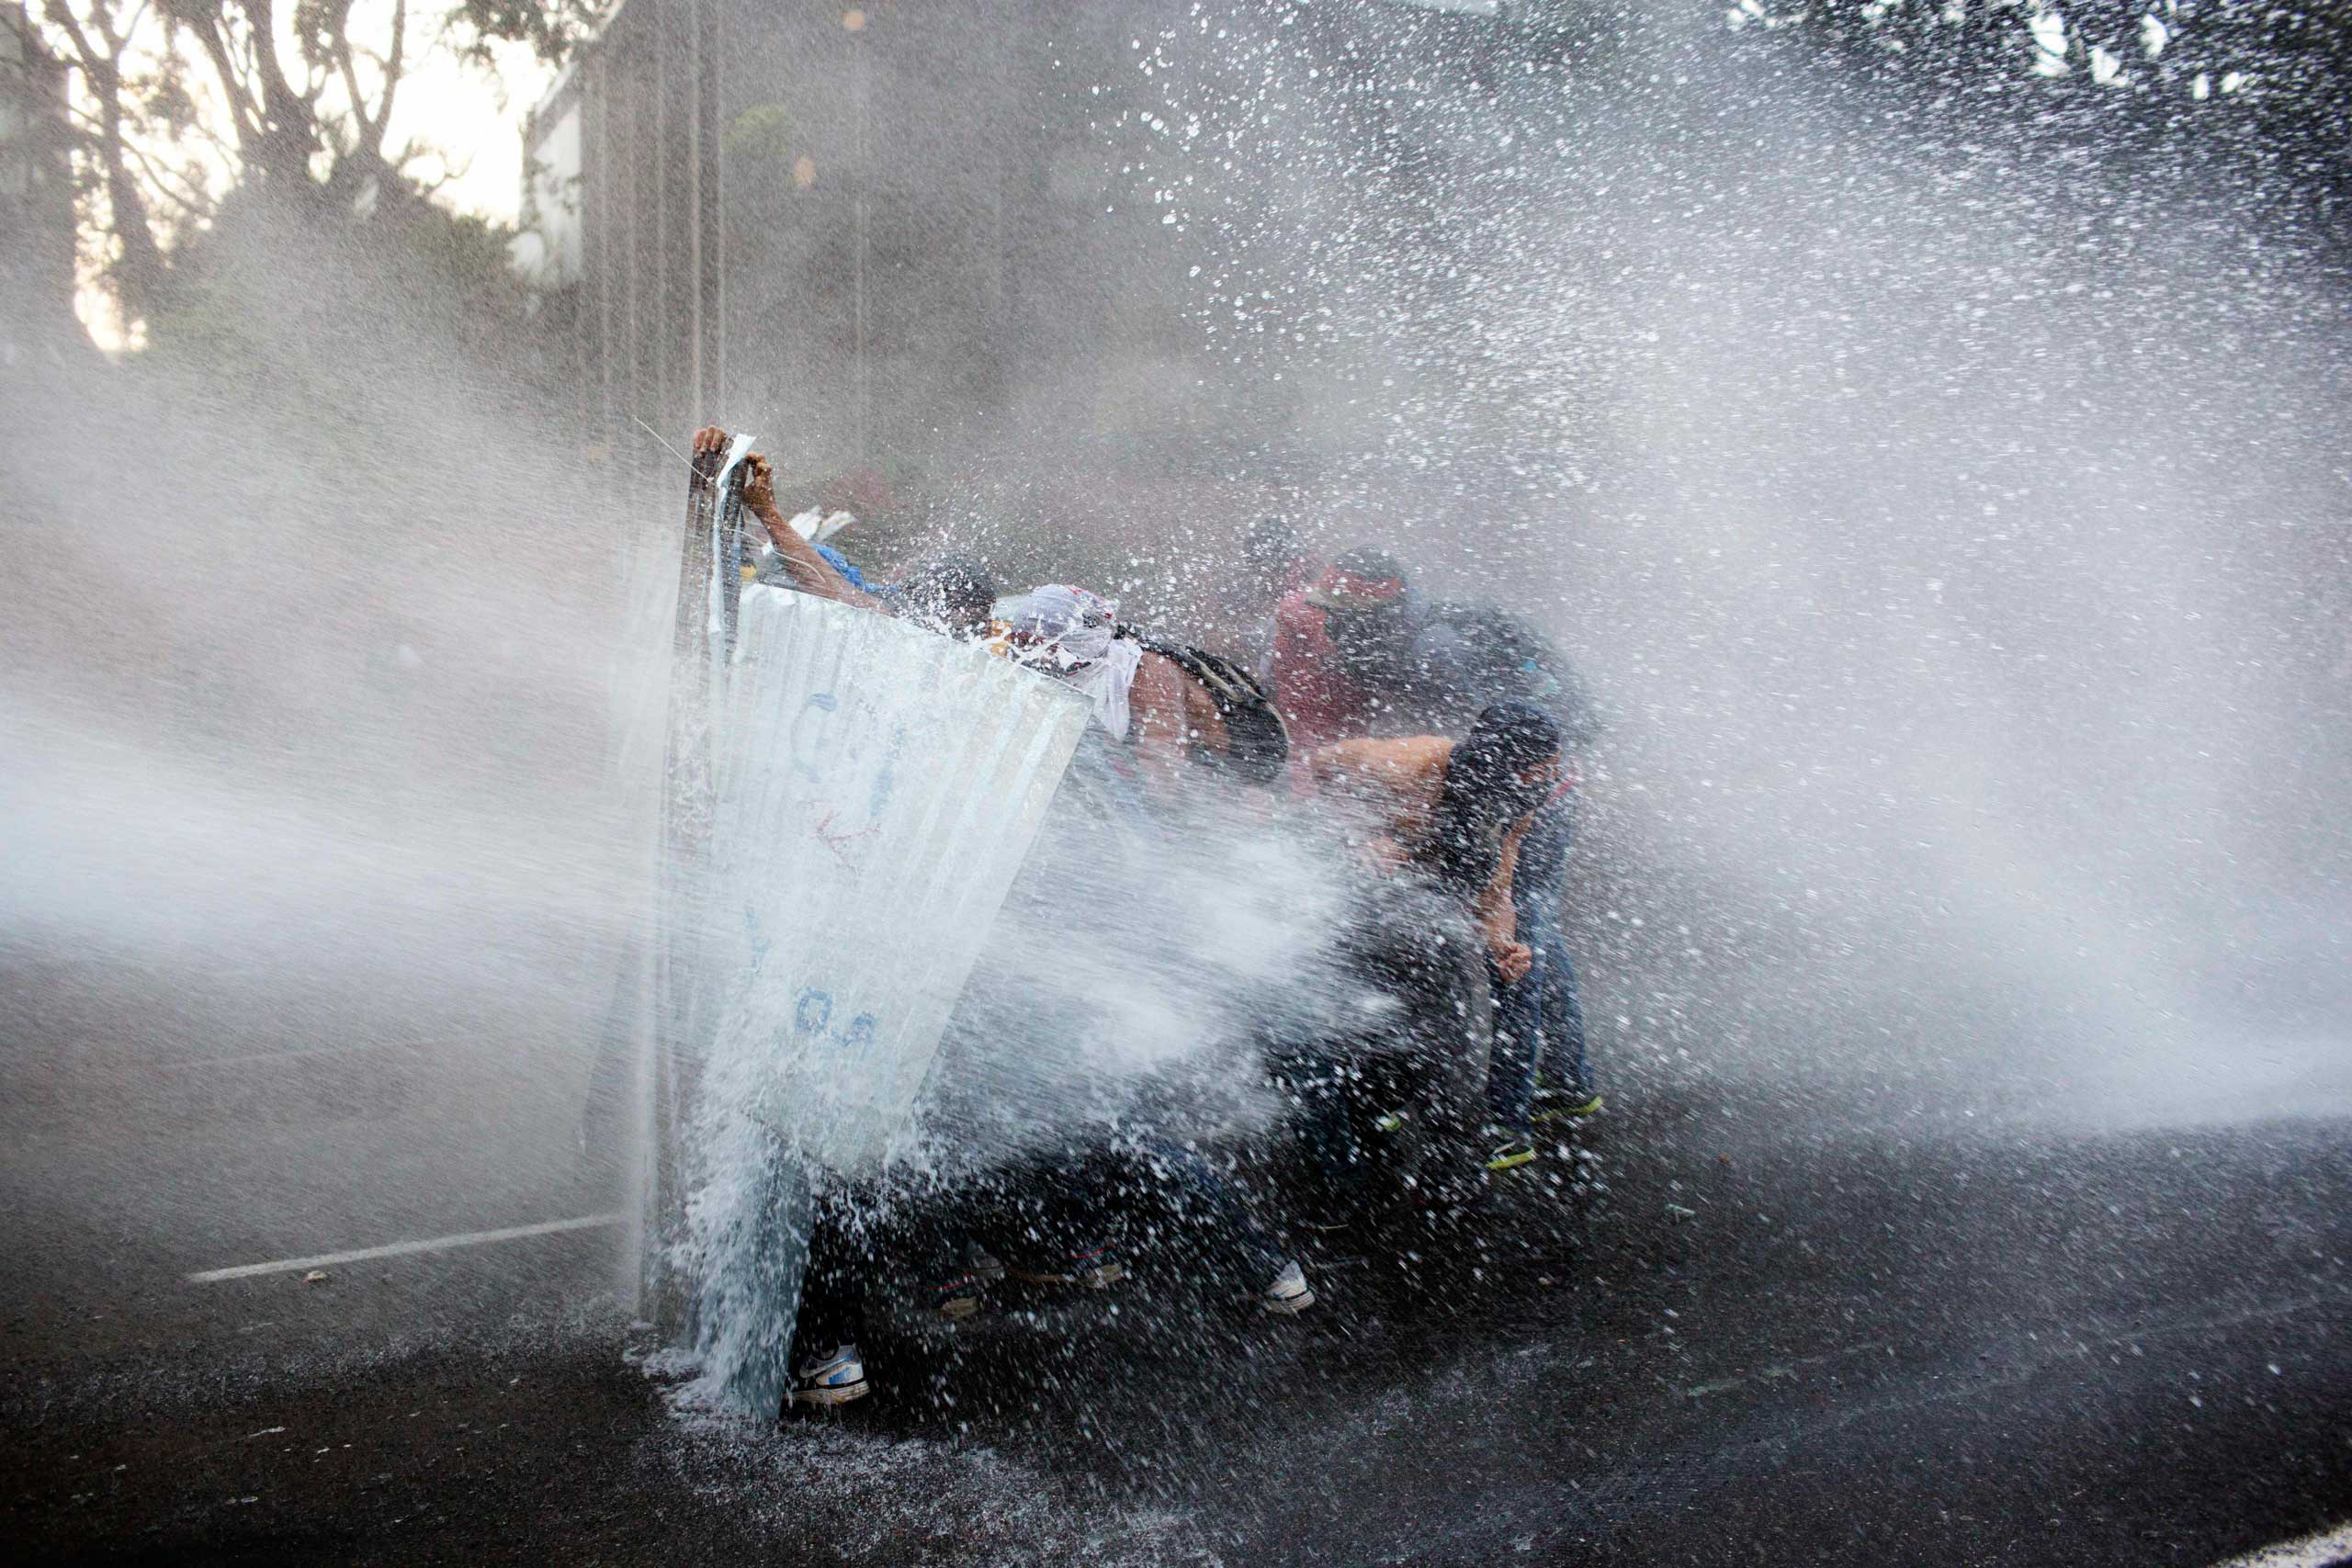 Venezuela: Anti-government protestsDemonstrators take cover from a police water cannon in Caracas, Feb. 28, 2014.